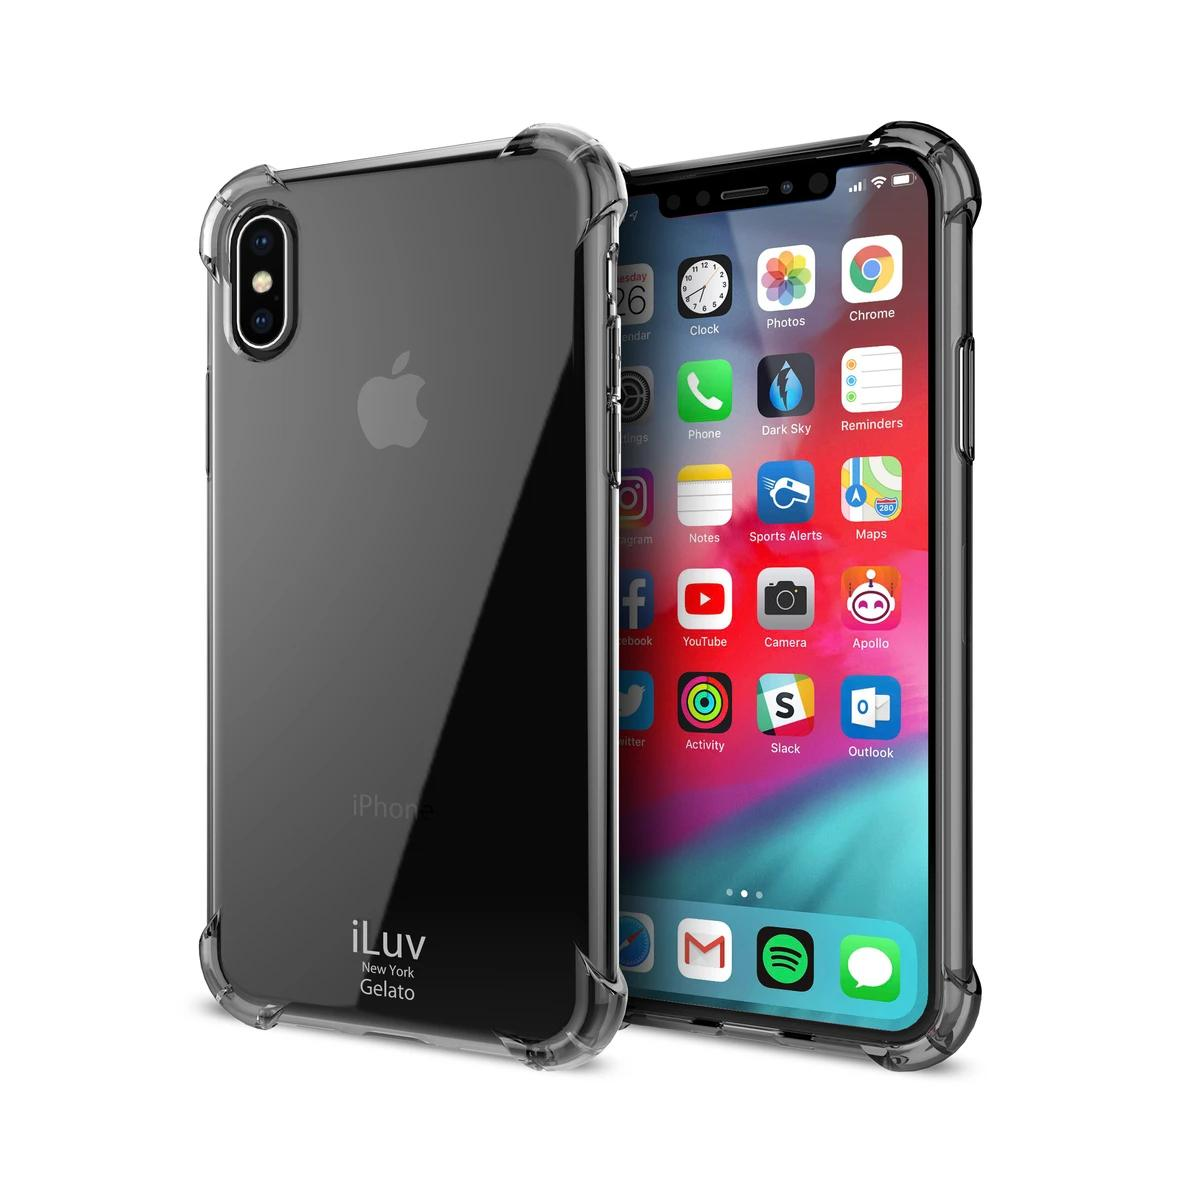 iLuv Soft Back Cover Case for iPhone X